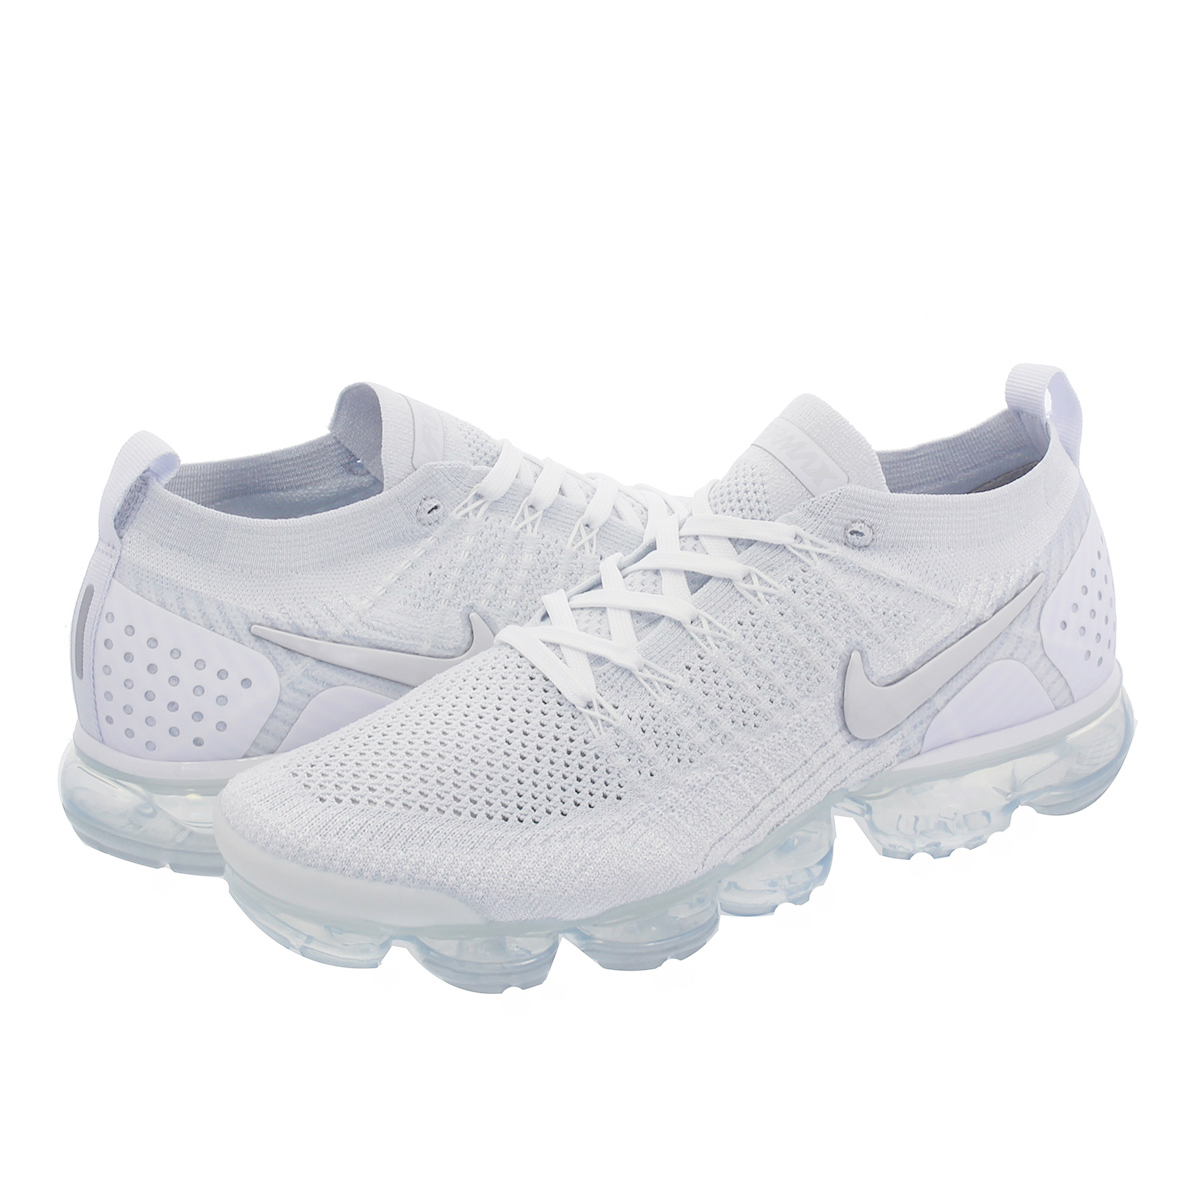 quality design f65b6 5a975 NIKE AIR VAPORMAX FLYKNIT 2 Nike vapor max fried food knit 2 WHITE/VAST  GREY/FOOTBALL GREY 942,842-105